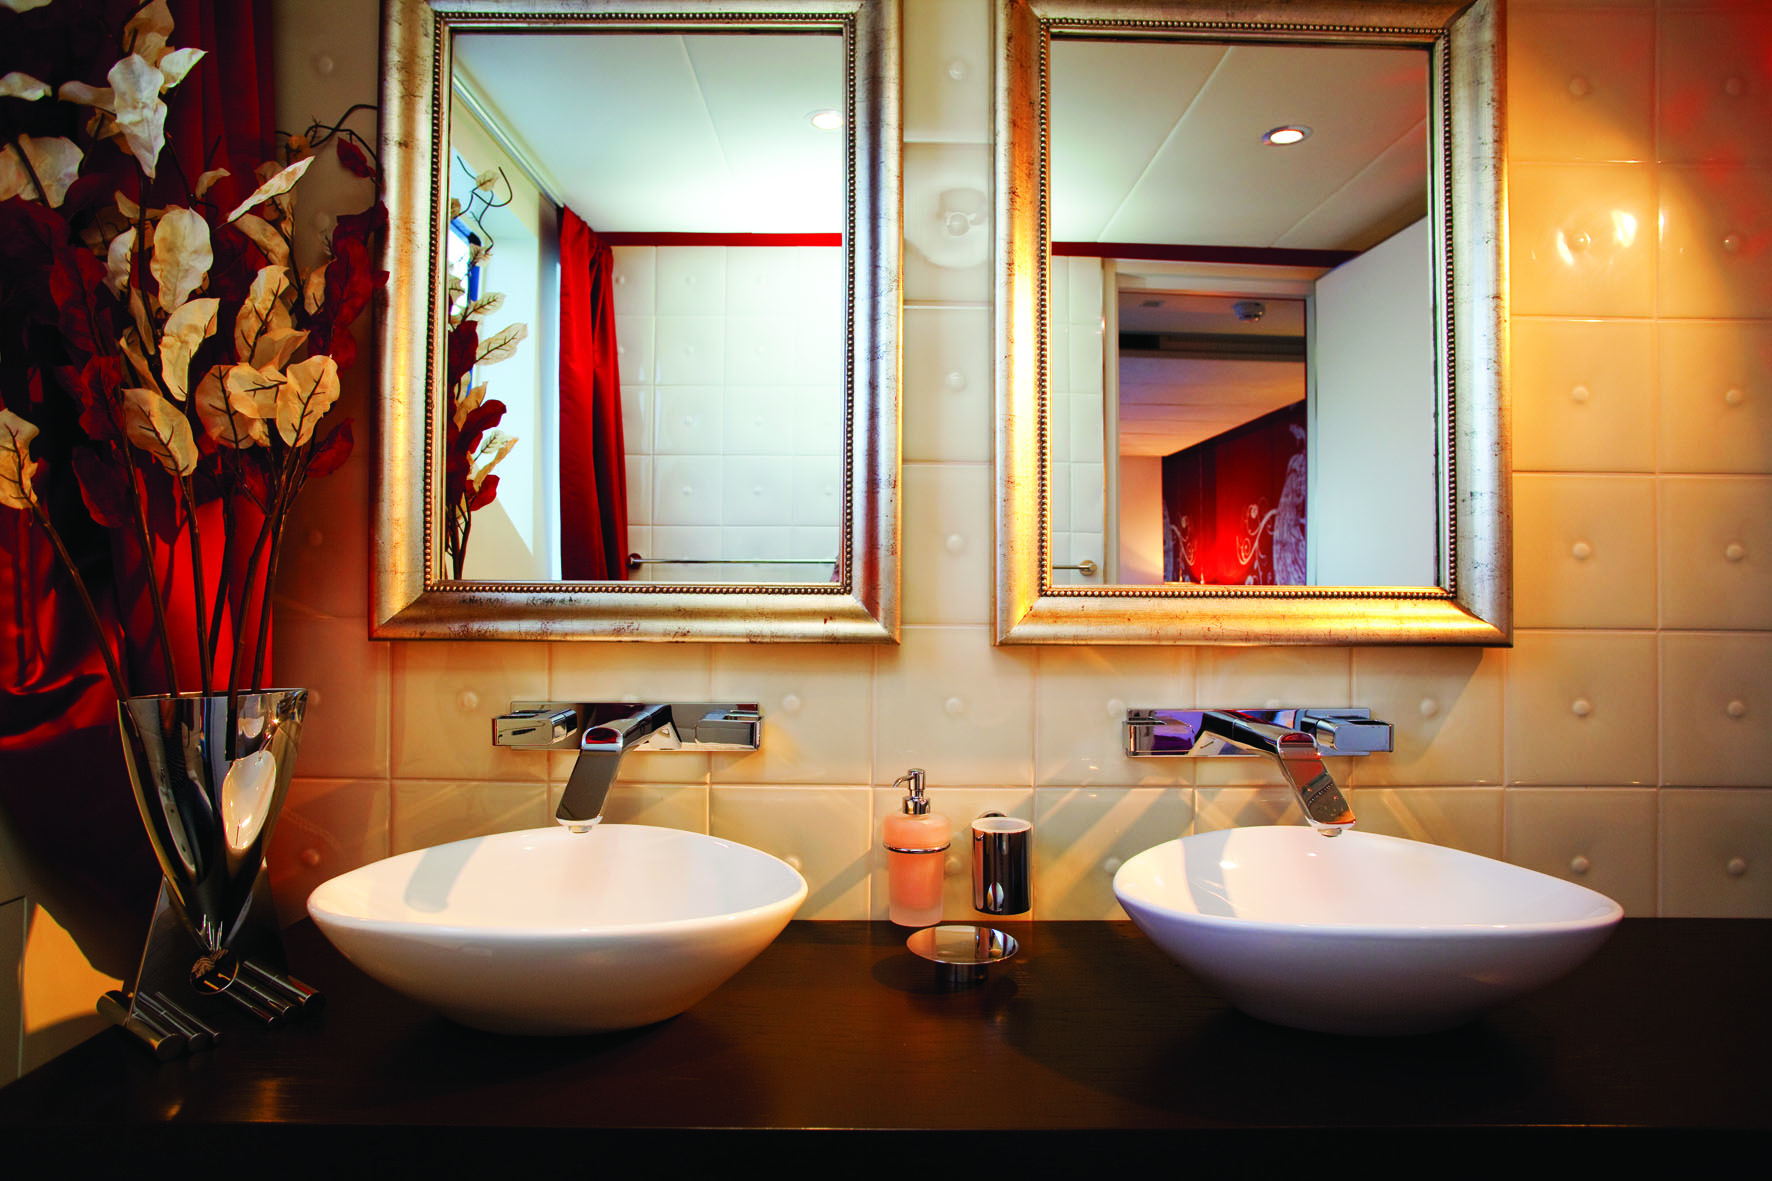 Chic cabin bathroom - Superyacht JoyMe - Interior by Standby - Builder Phillip Zepter Yachts